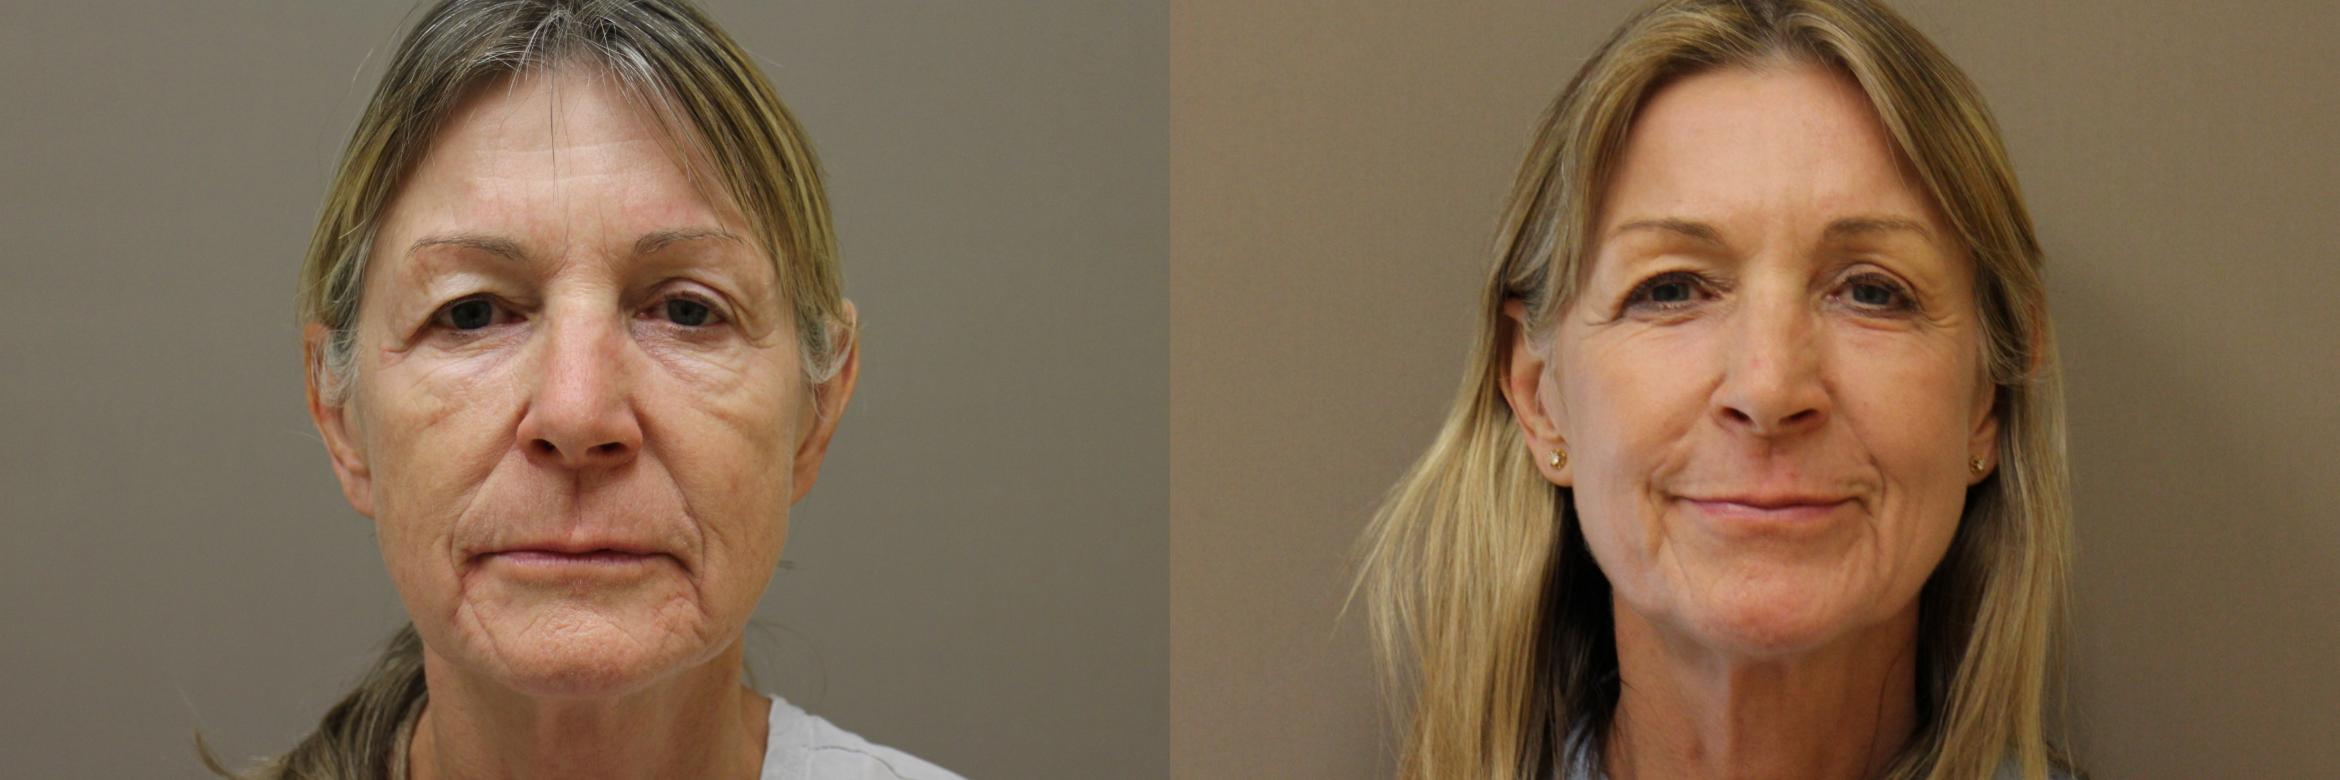 Lasers & Lights Case 178 Before & After View #1 | Webster, TX | Houston Plastic and Reconstructive Surgery